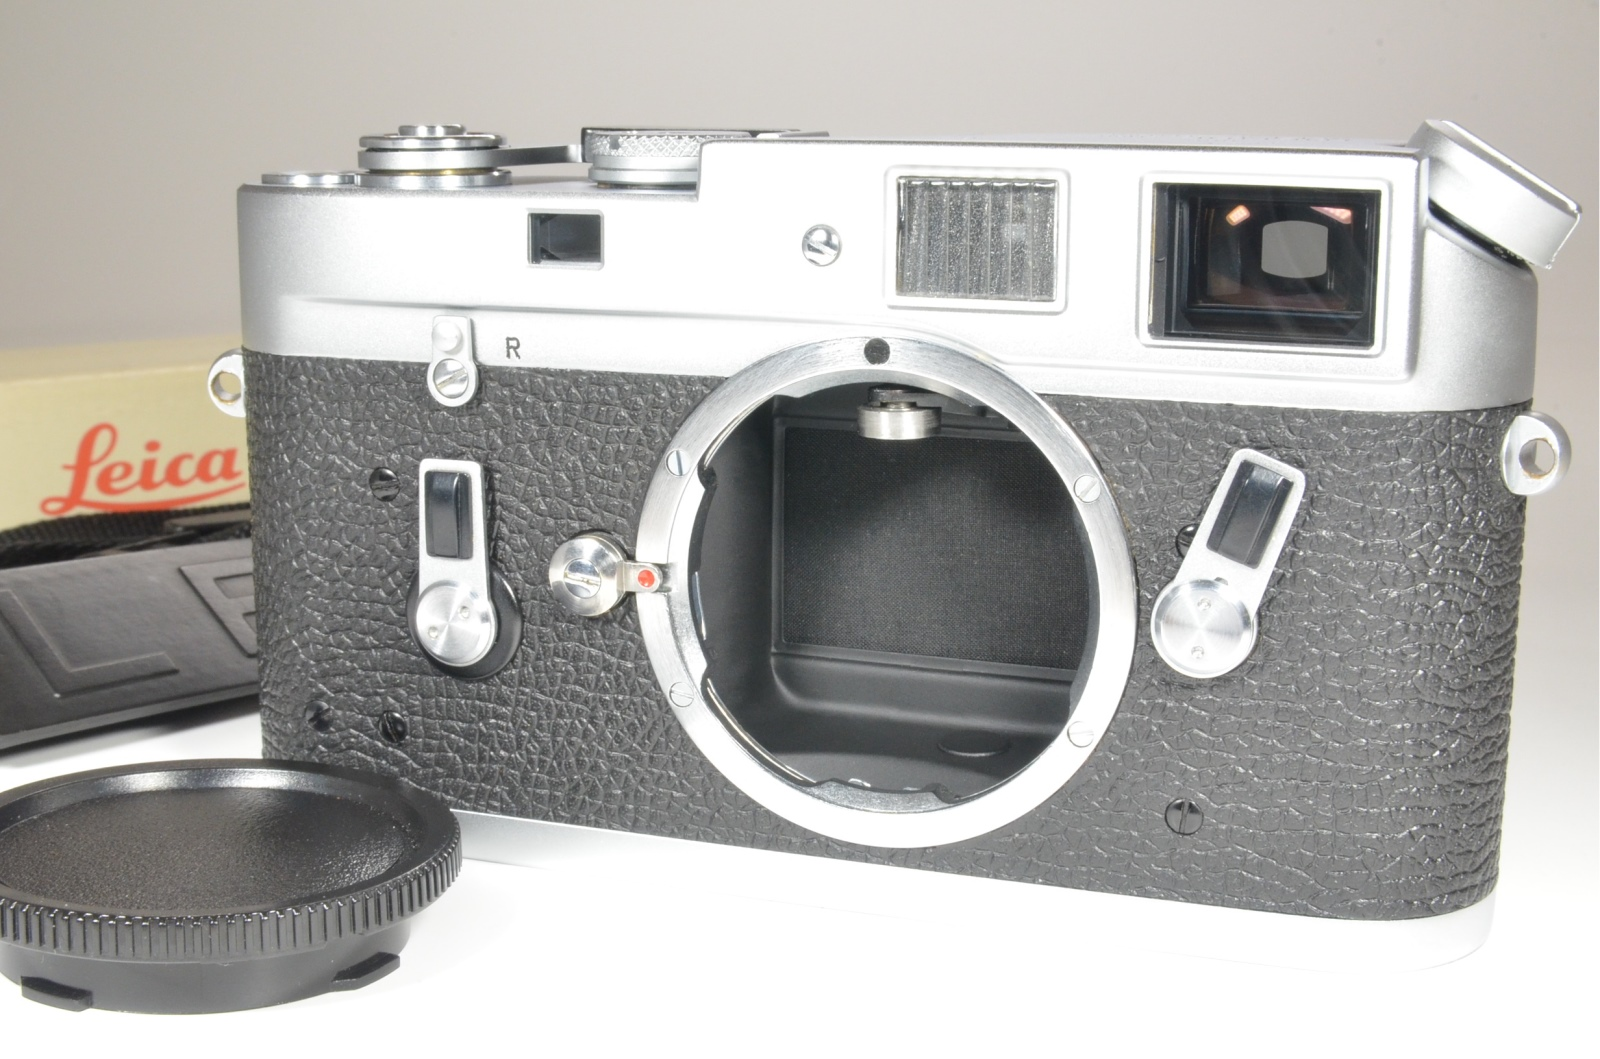 Leica M4 35mm Rangefinder Film Camera S/N 1230551 Year 1969 with